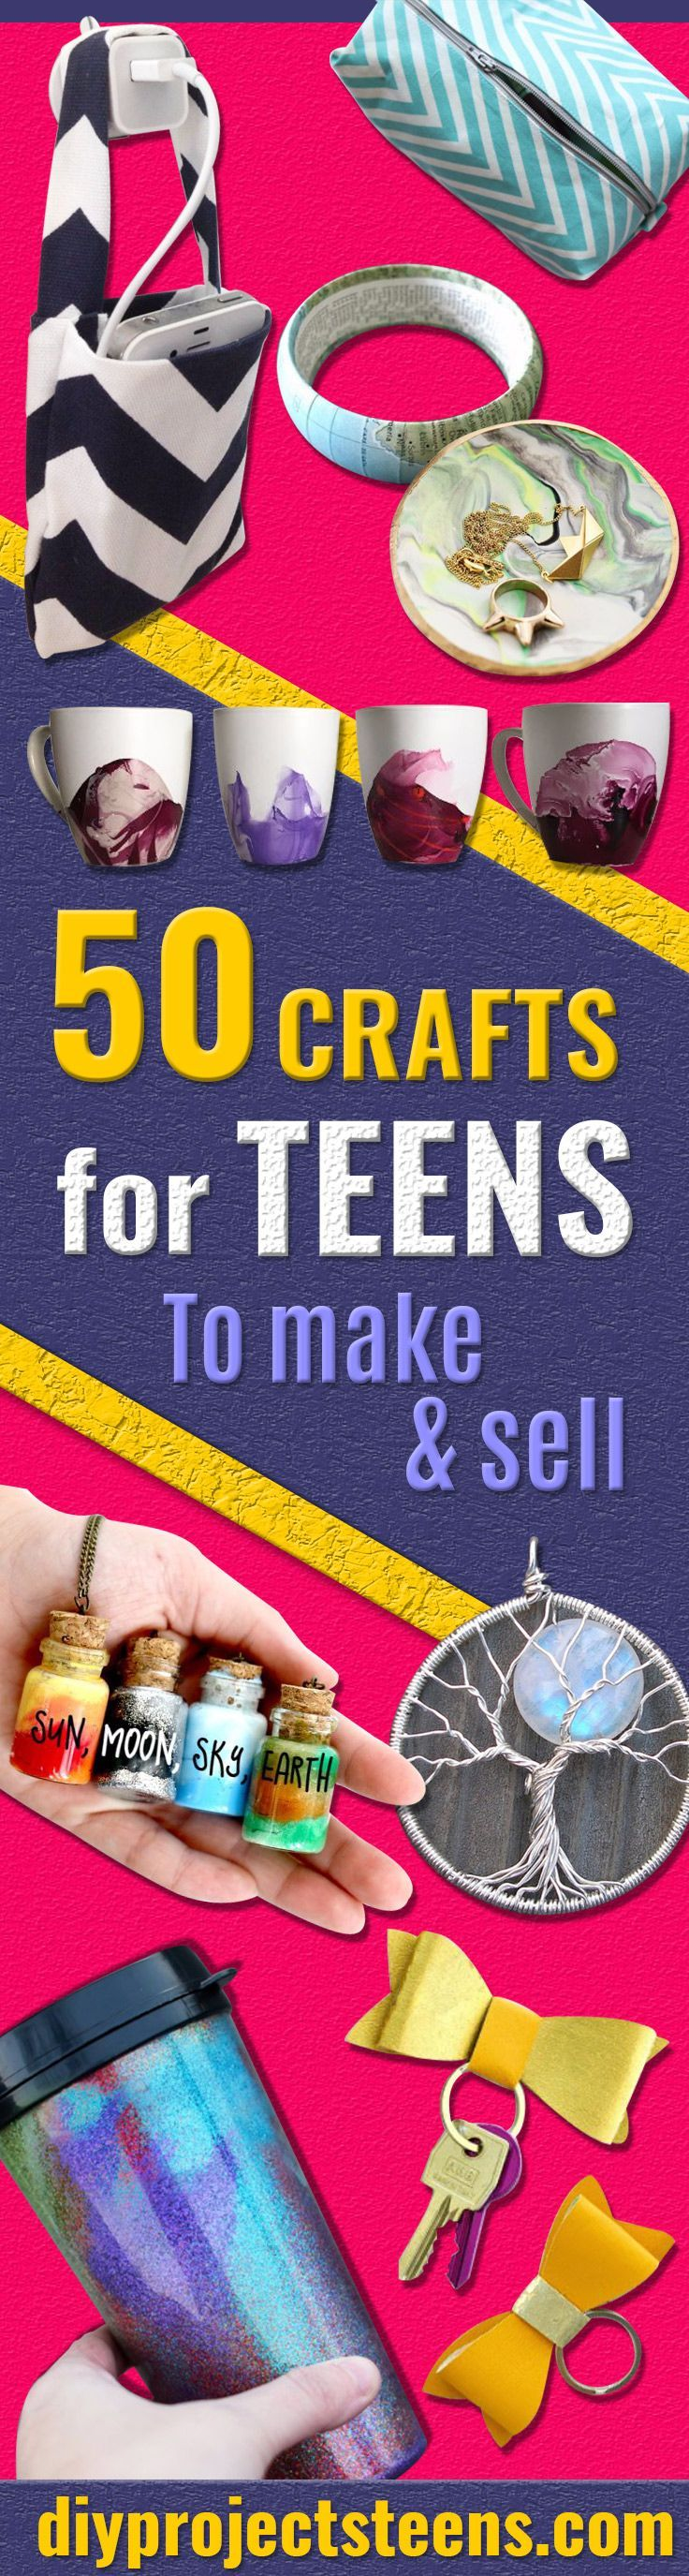 50 Crafts for Teens To Make and